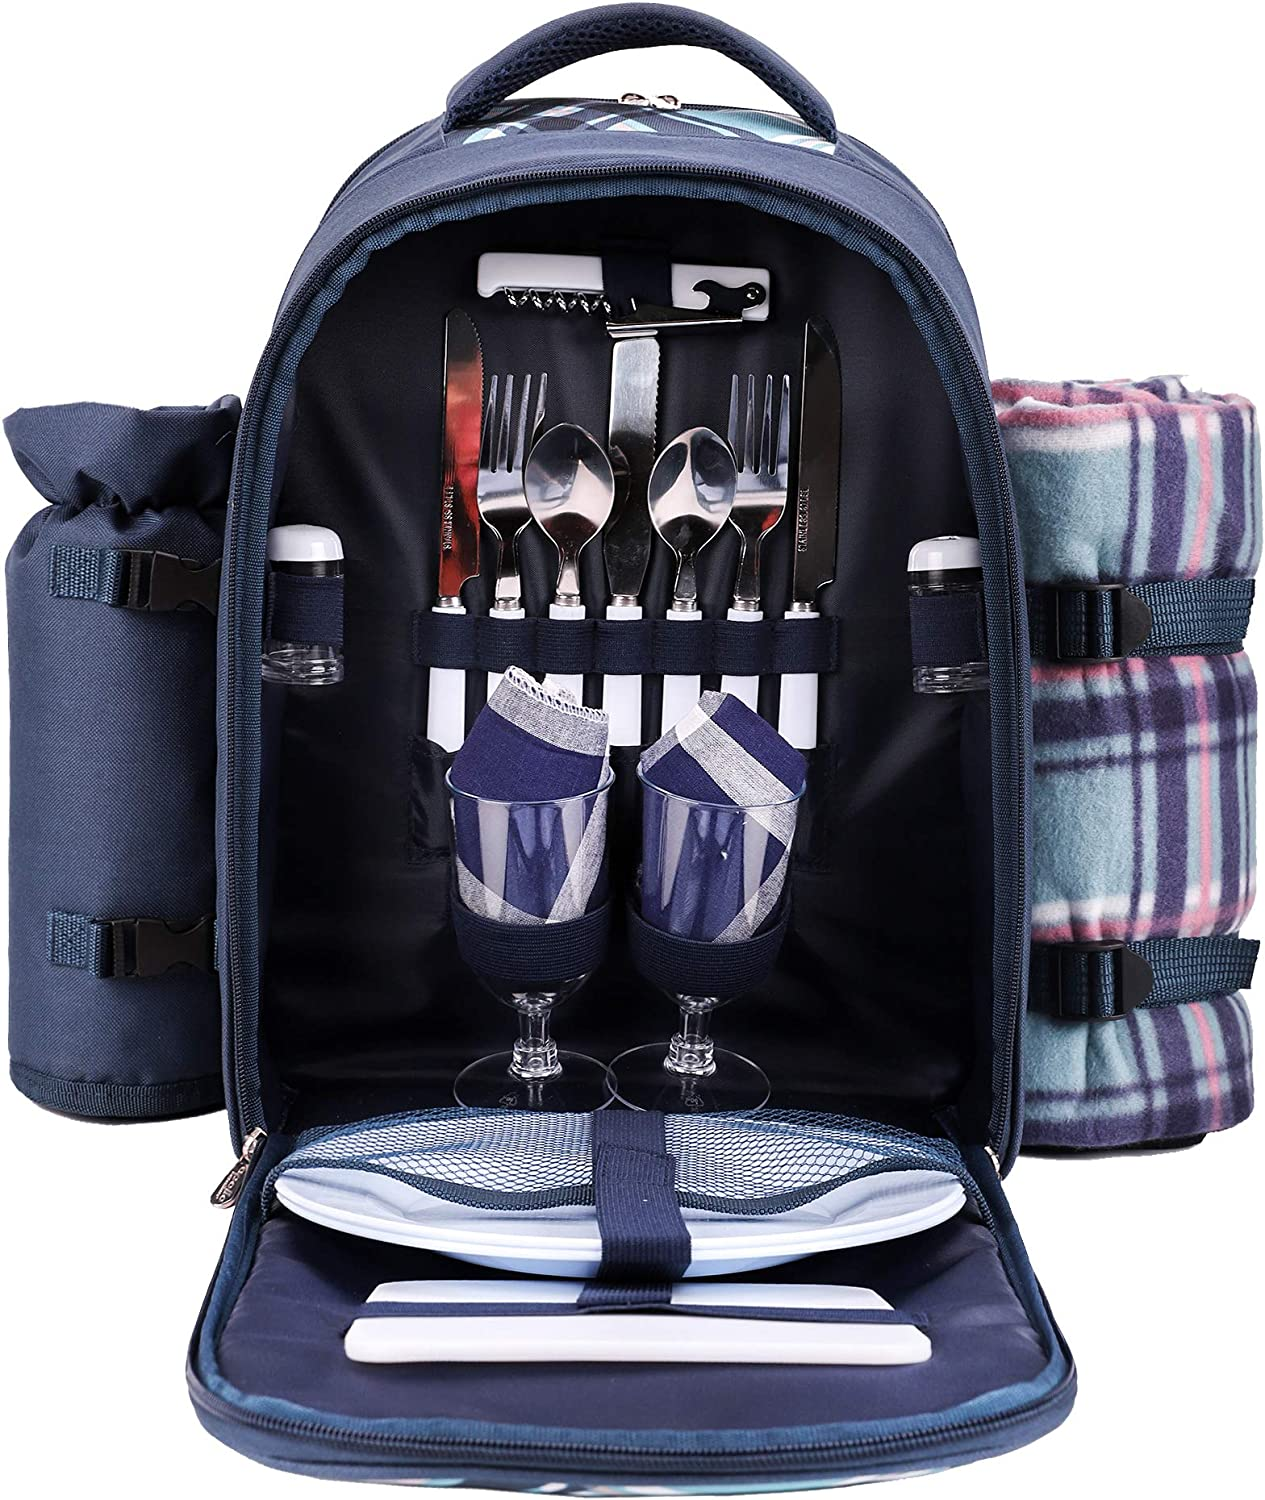 Apollo Walker Picnic Backpack Bag For 2 Person With Cooler Compartment Detachable Bottle Wine Holder Fleece Blanket Plates And Cutlery Blue Garden Outdoor